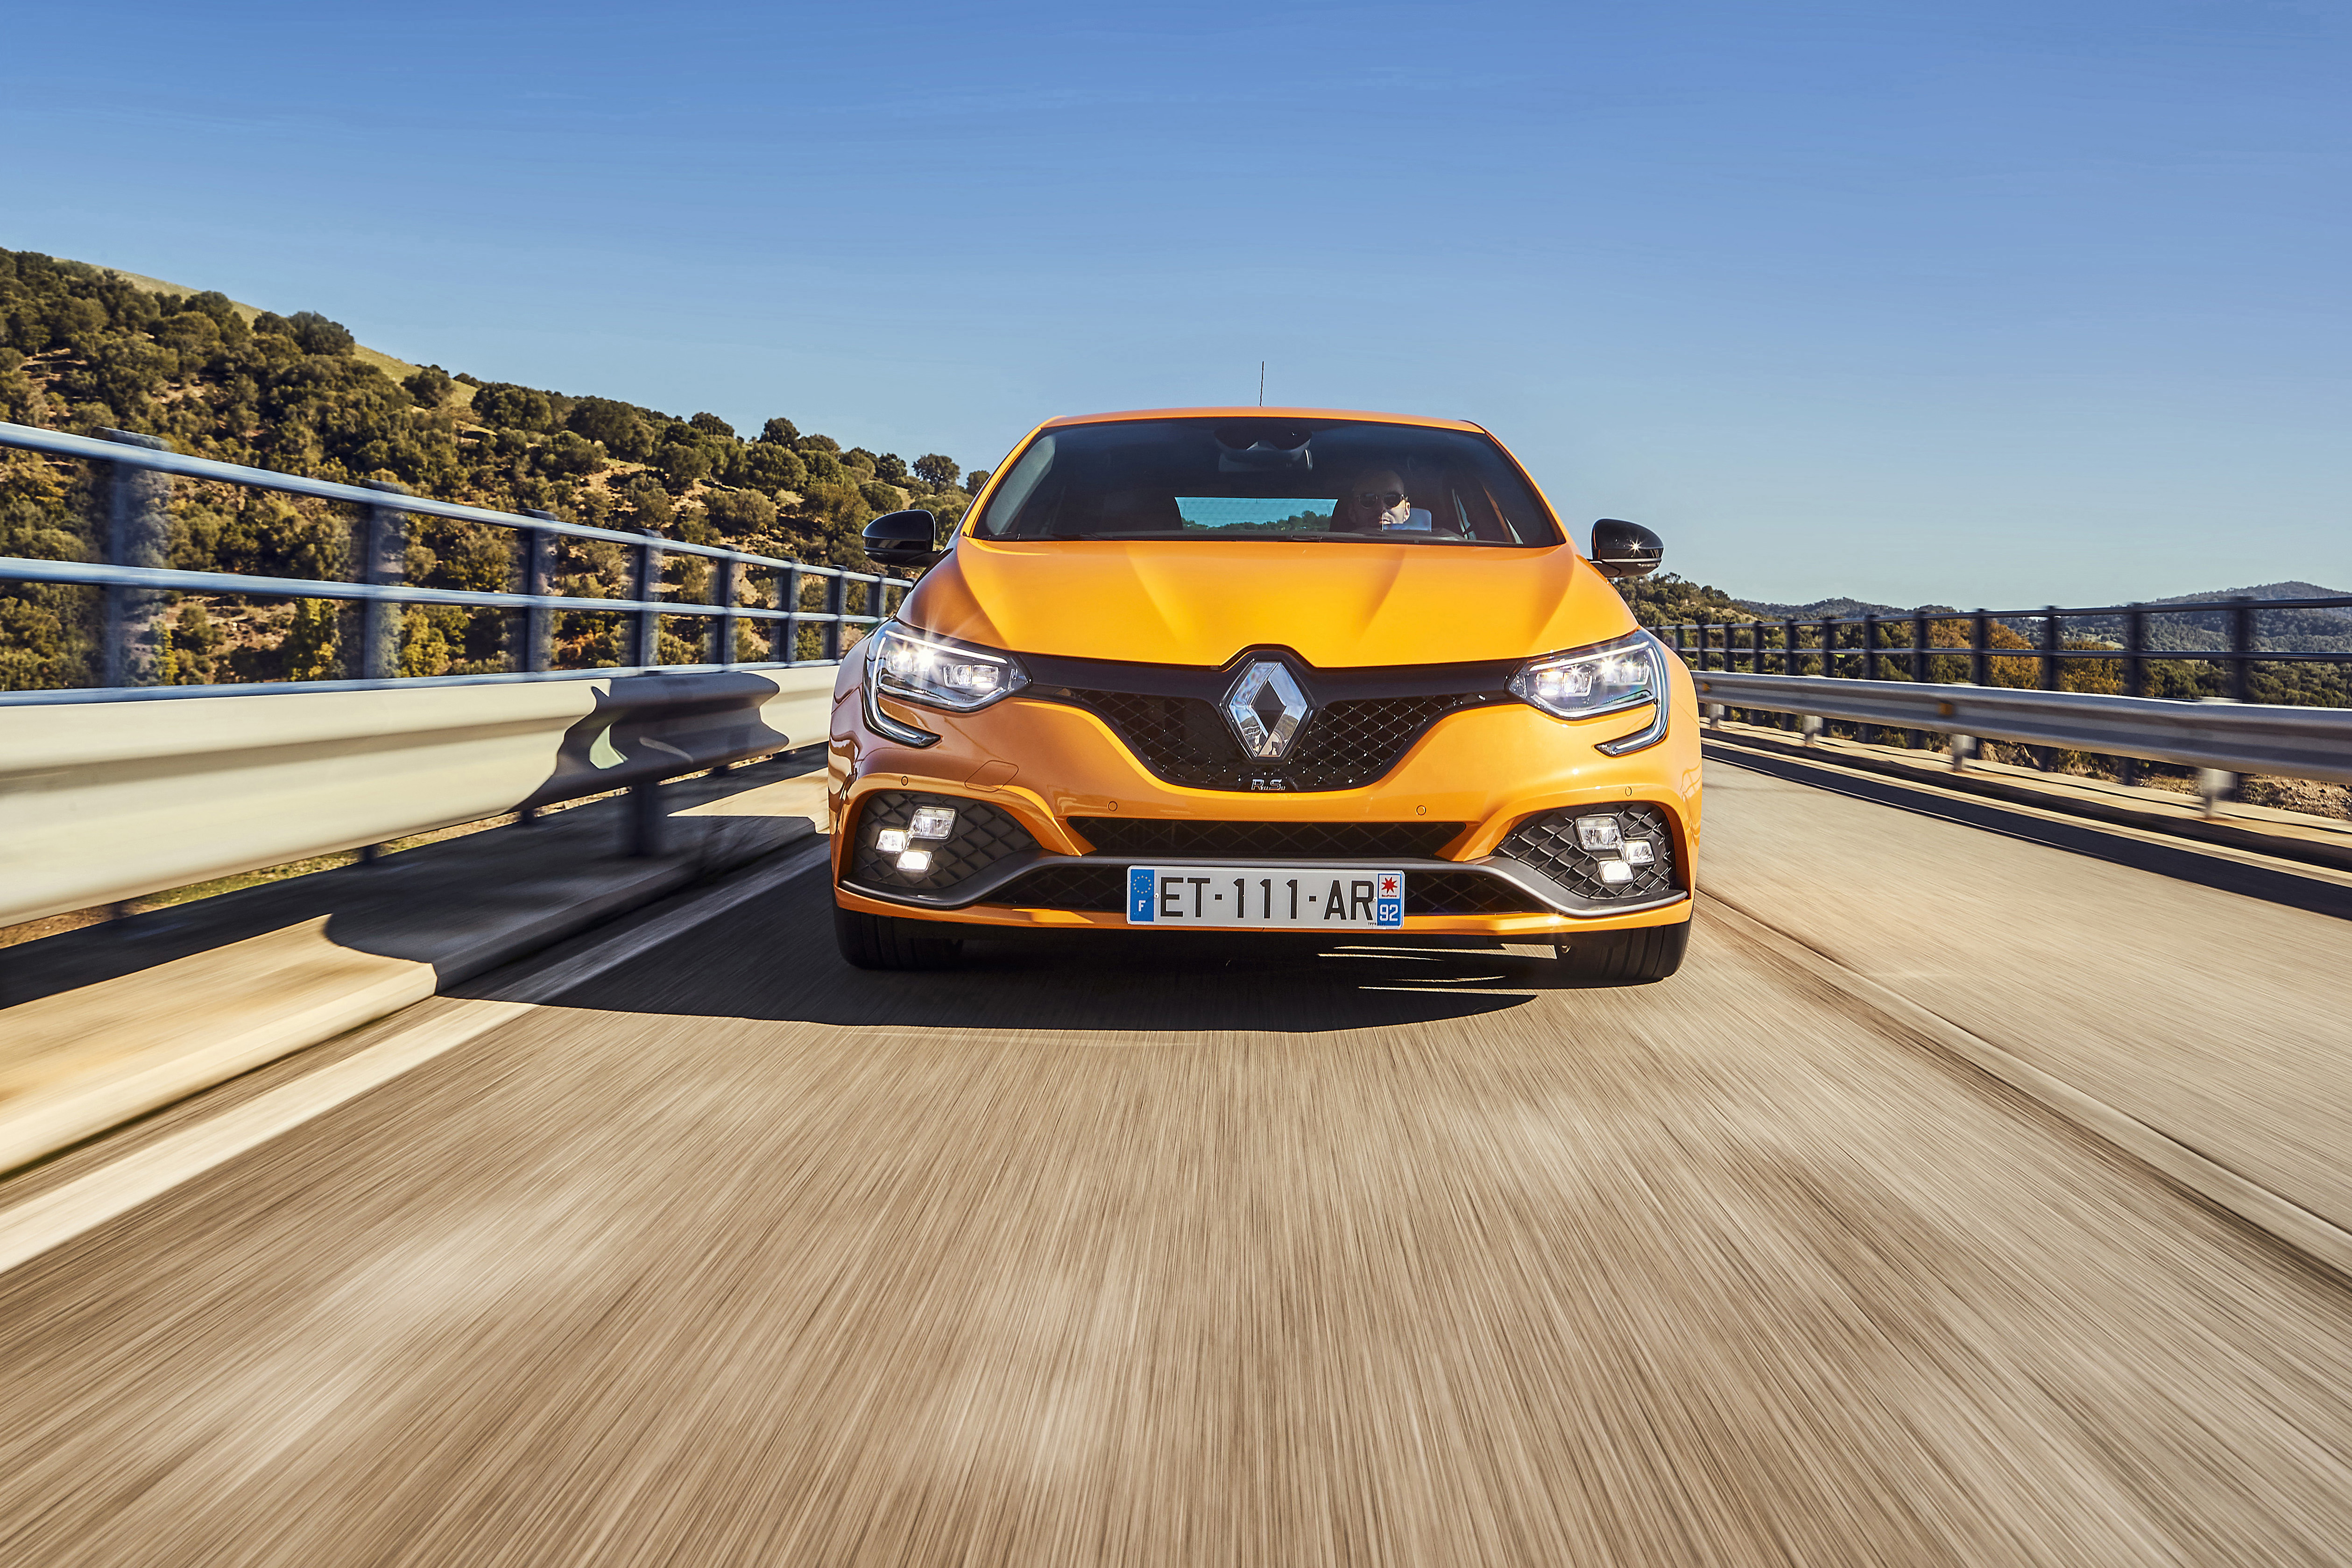 Renault Mégane R.S. Chassis Sport Dynamic (23)